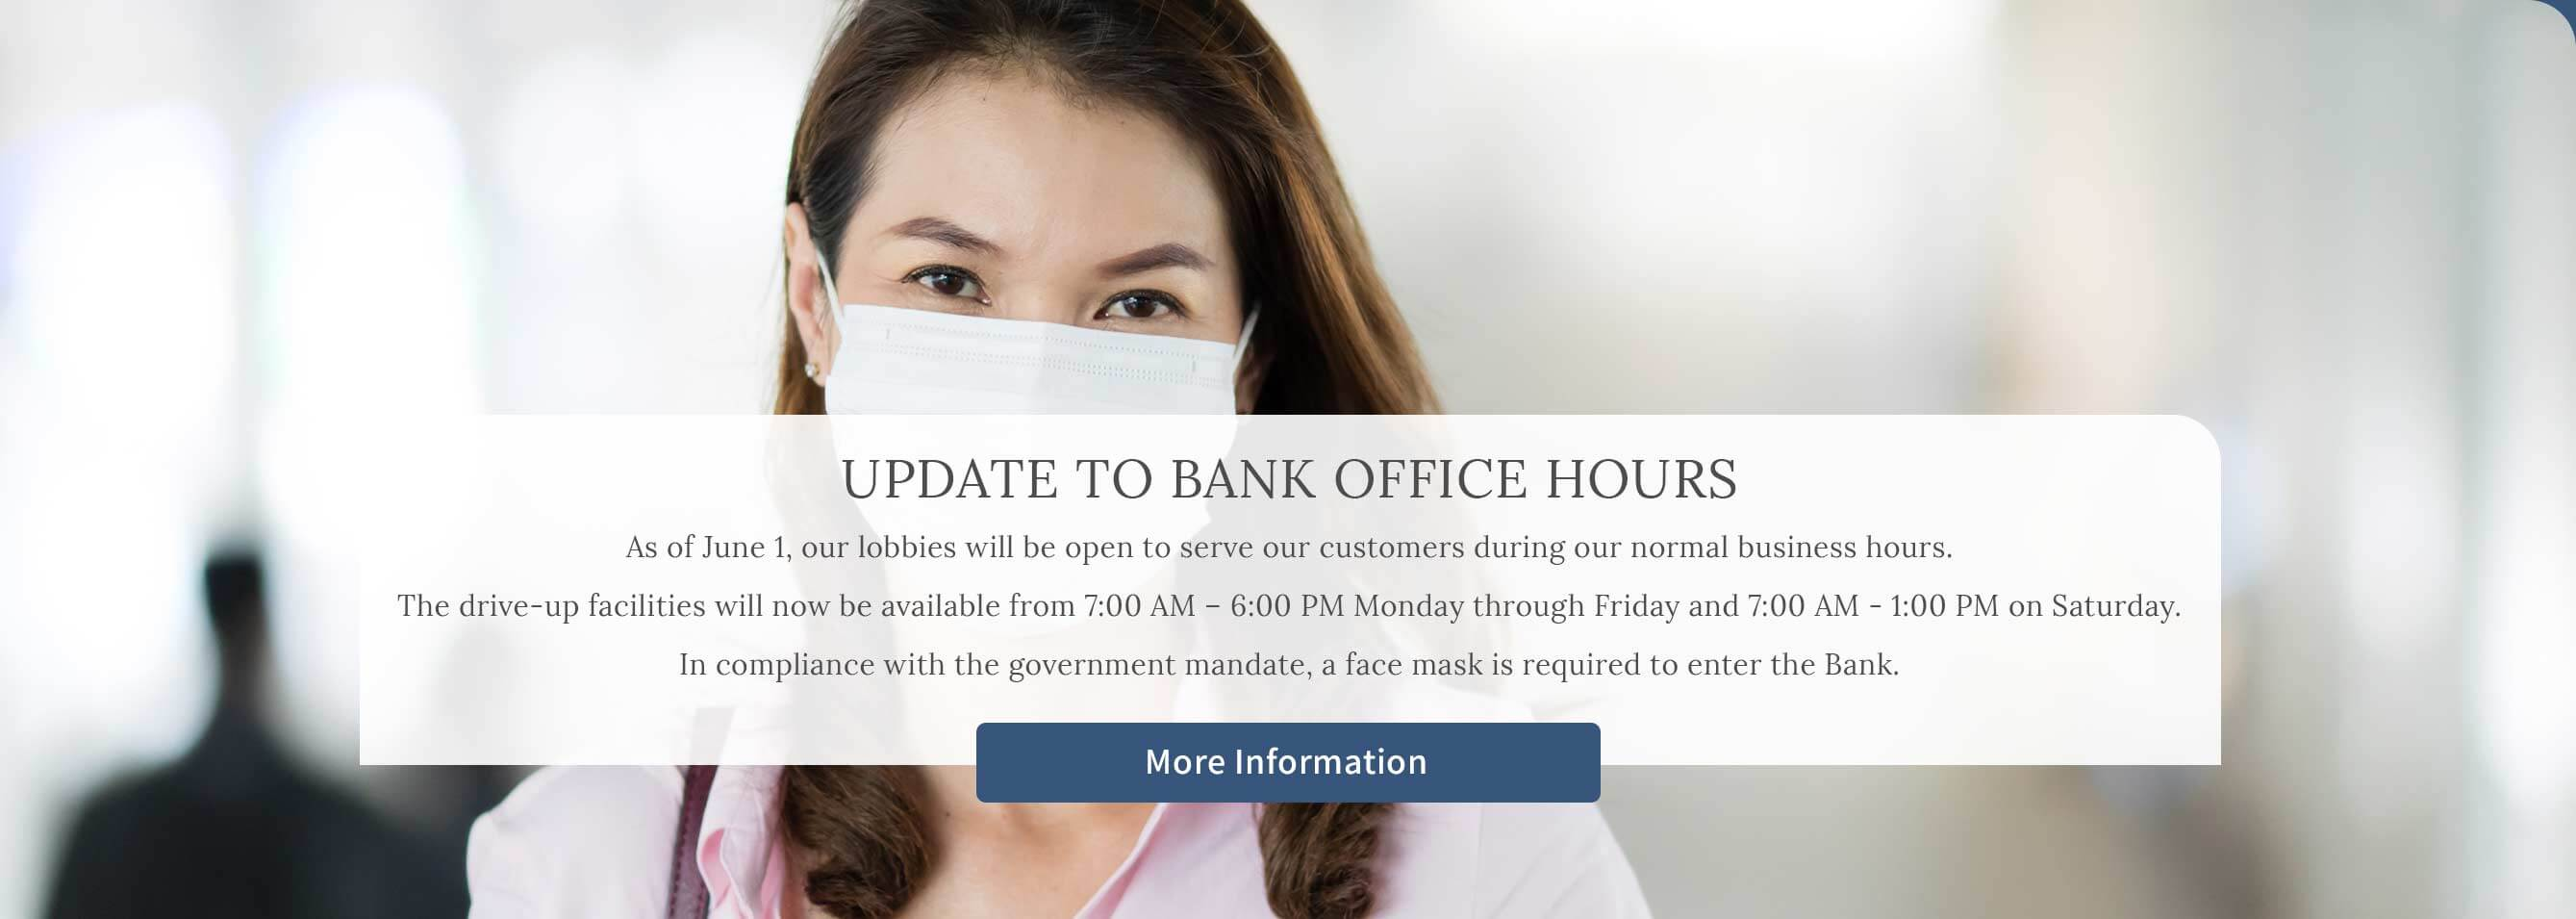 Update to Bank Office Hours As of June 1, our lobby will be open to serve our customers during our normal business hours. The drive-up facilities will now be available from 7:00 AM – 6:00 PM Monday through Friday and 7:00 AM - 1:00 PM on Saturday.In compliance with the government mandate, a face mask is required to enter the Bank.